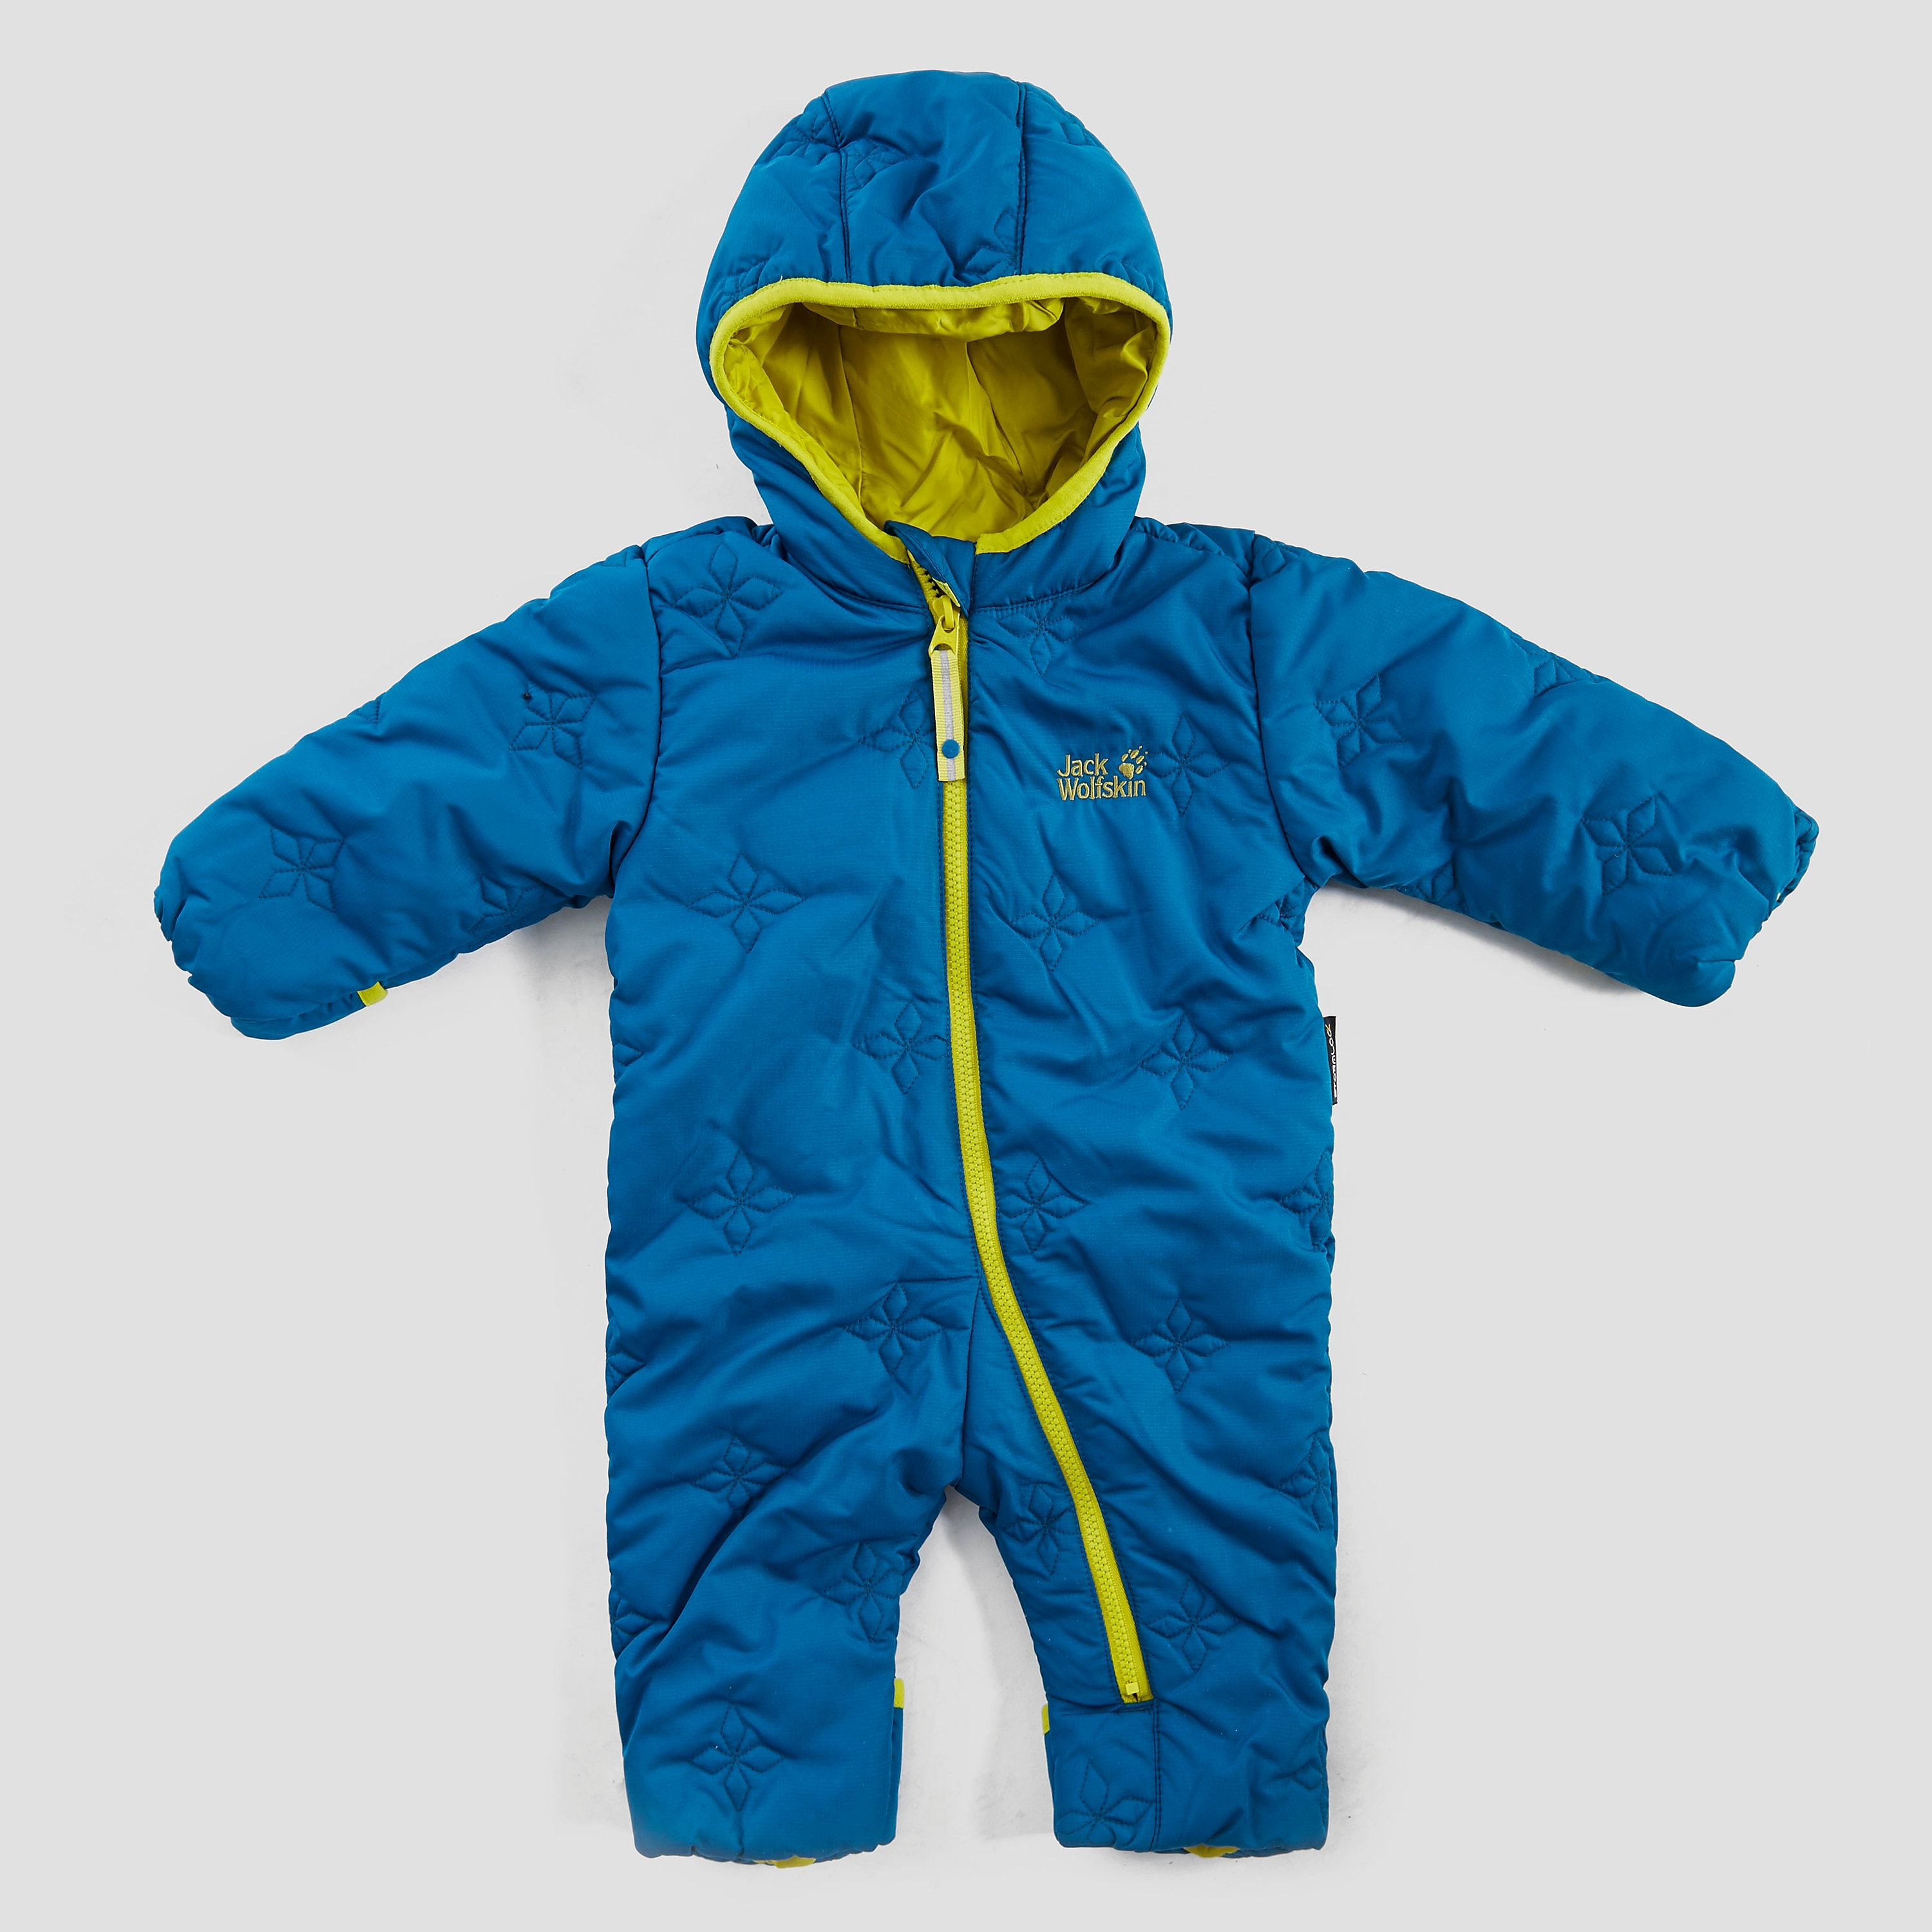 JACK WOLFSKIN ICE CRYSTAL Infant's OVERALl